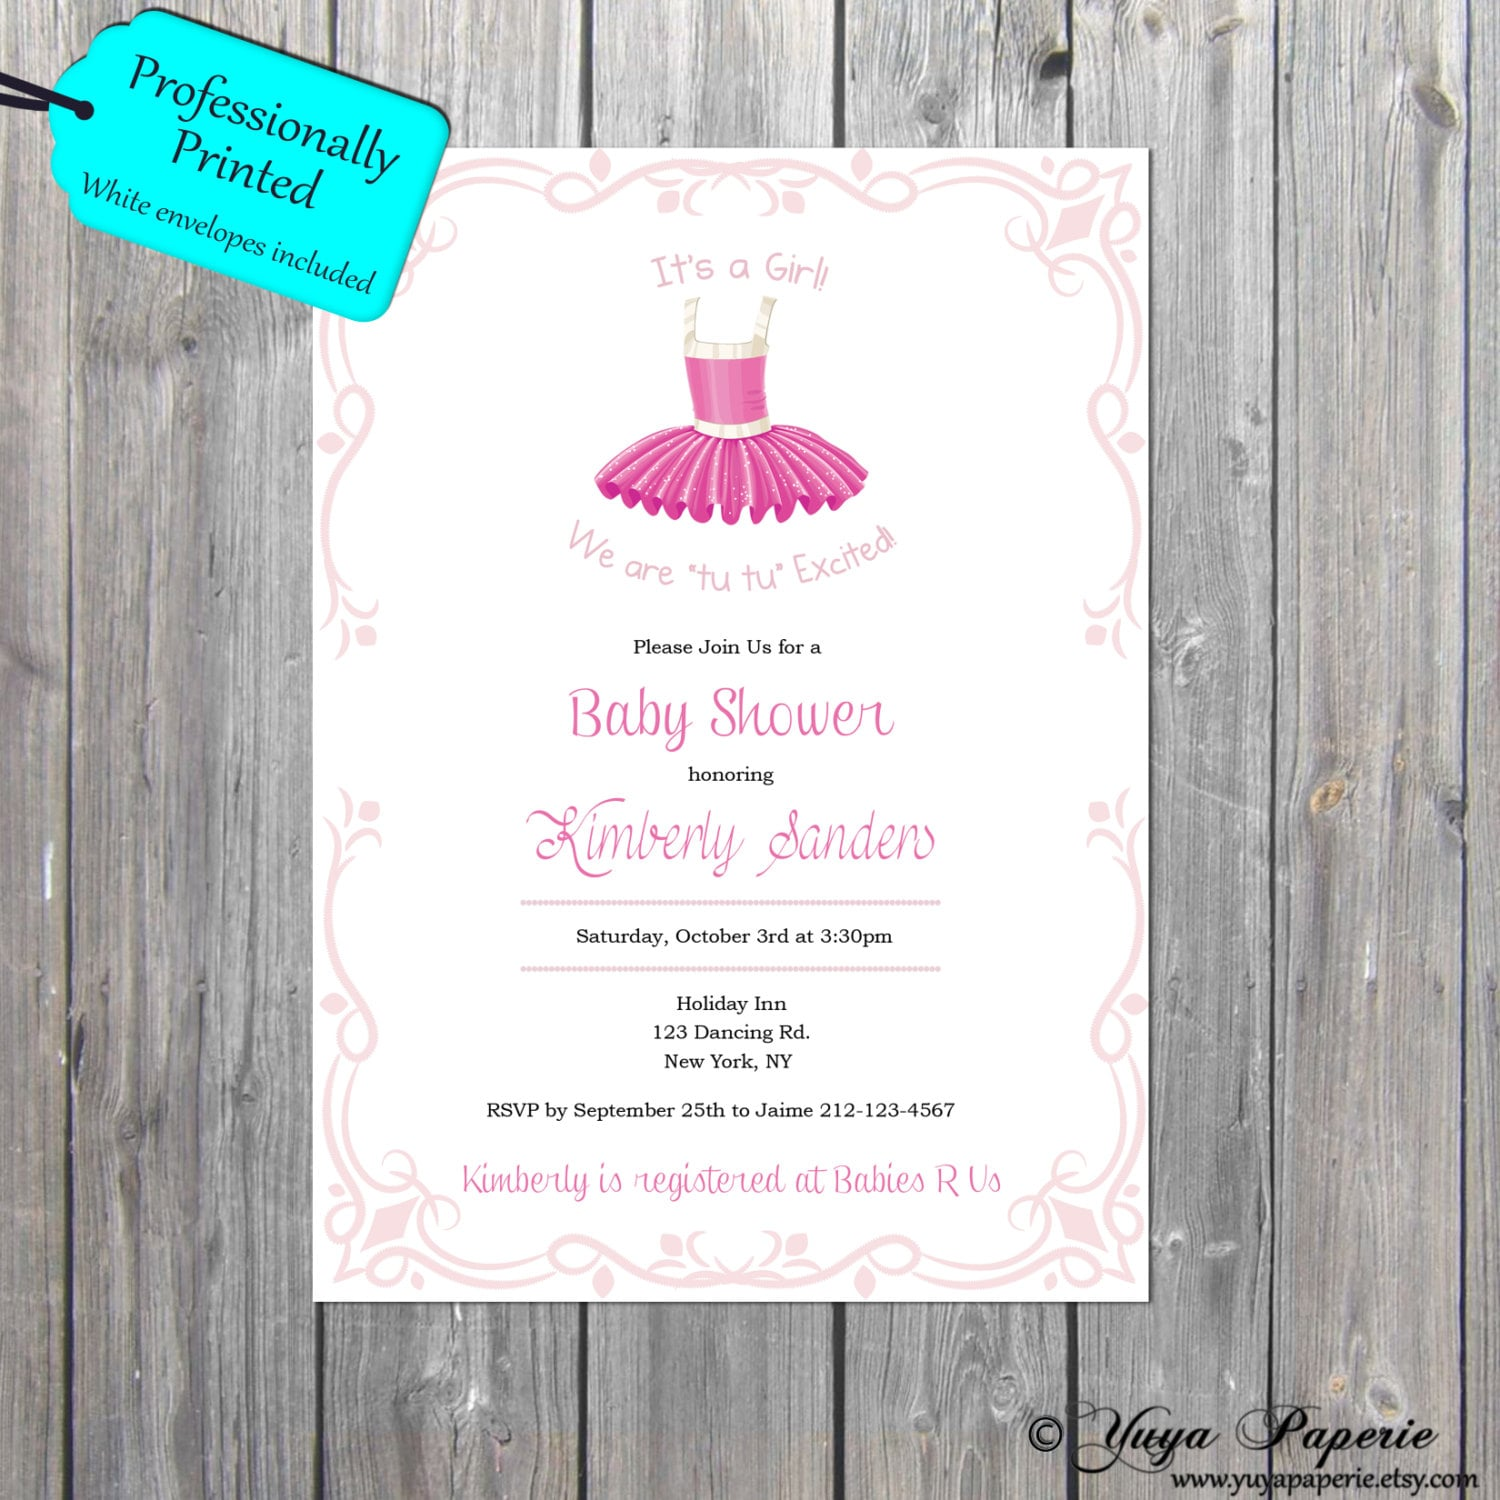 Tutu Themed Baby Shower Invitation Ballerina Theme Invitation Tutu